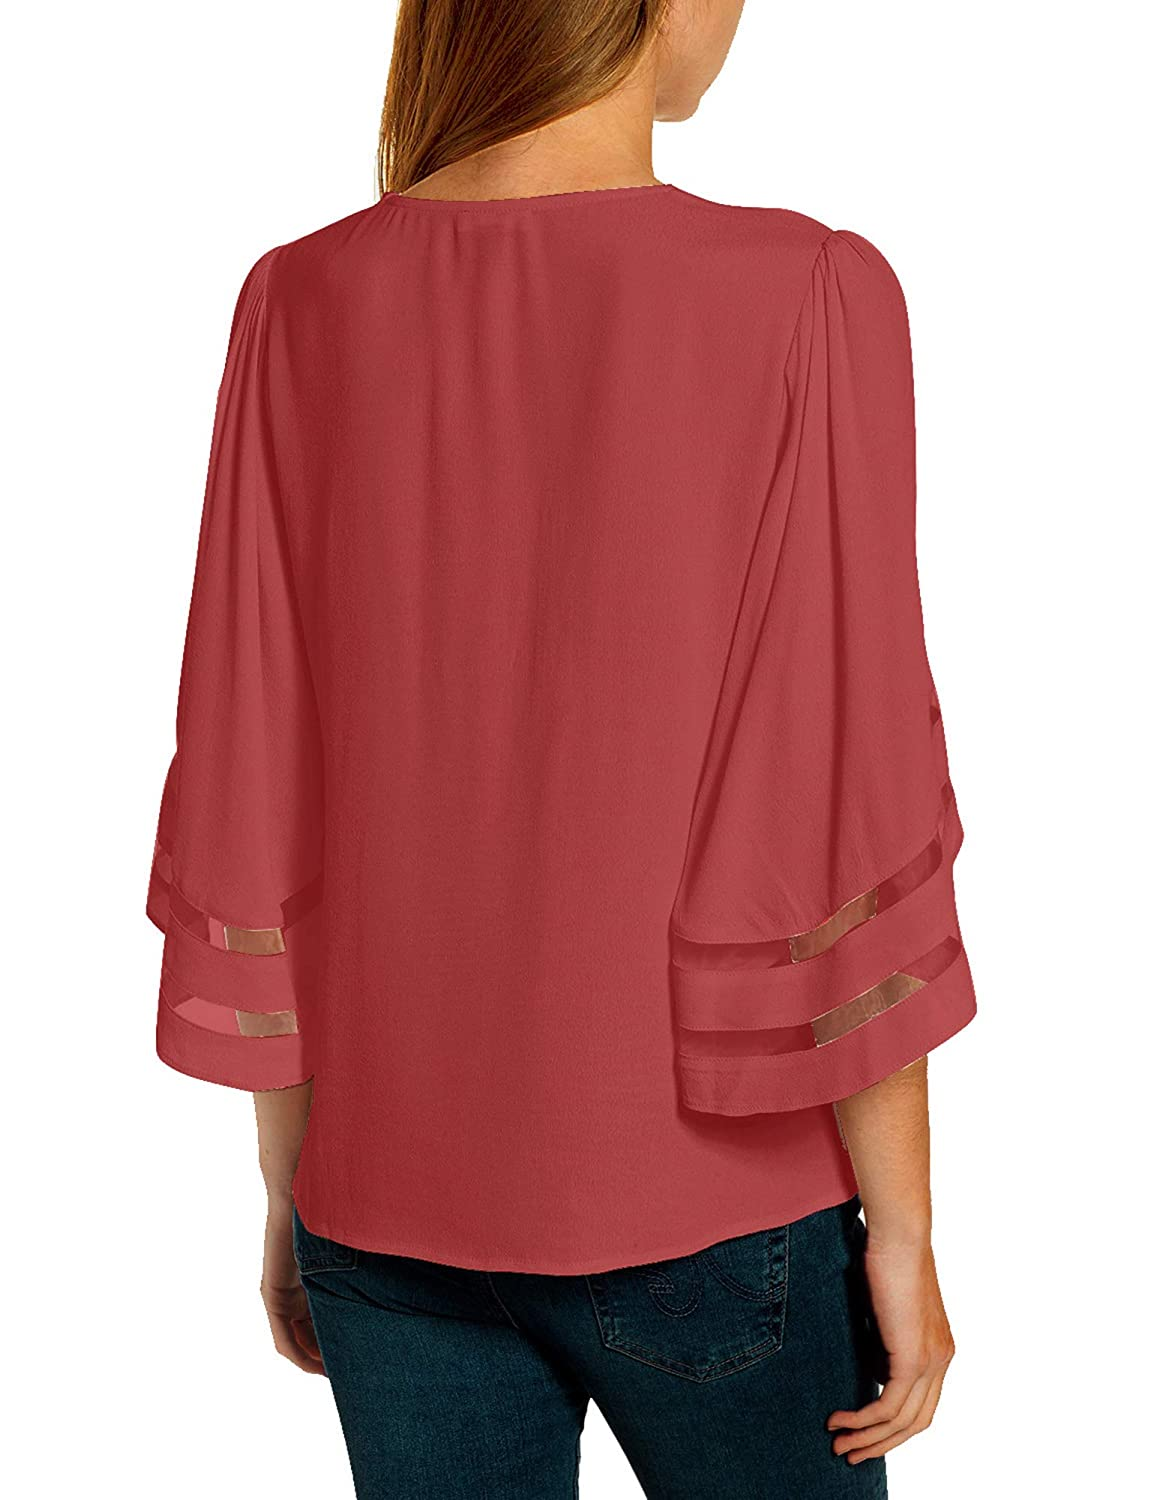 Luyeess Womens Casual Crew Neck Loose Mesh Panel Chiffon 3//4 Bell Sleeve Blouse Top Shirt Tee White US 12-14 Size L